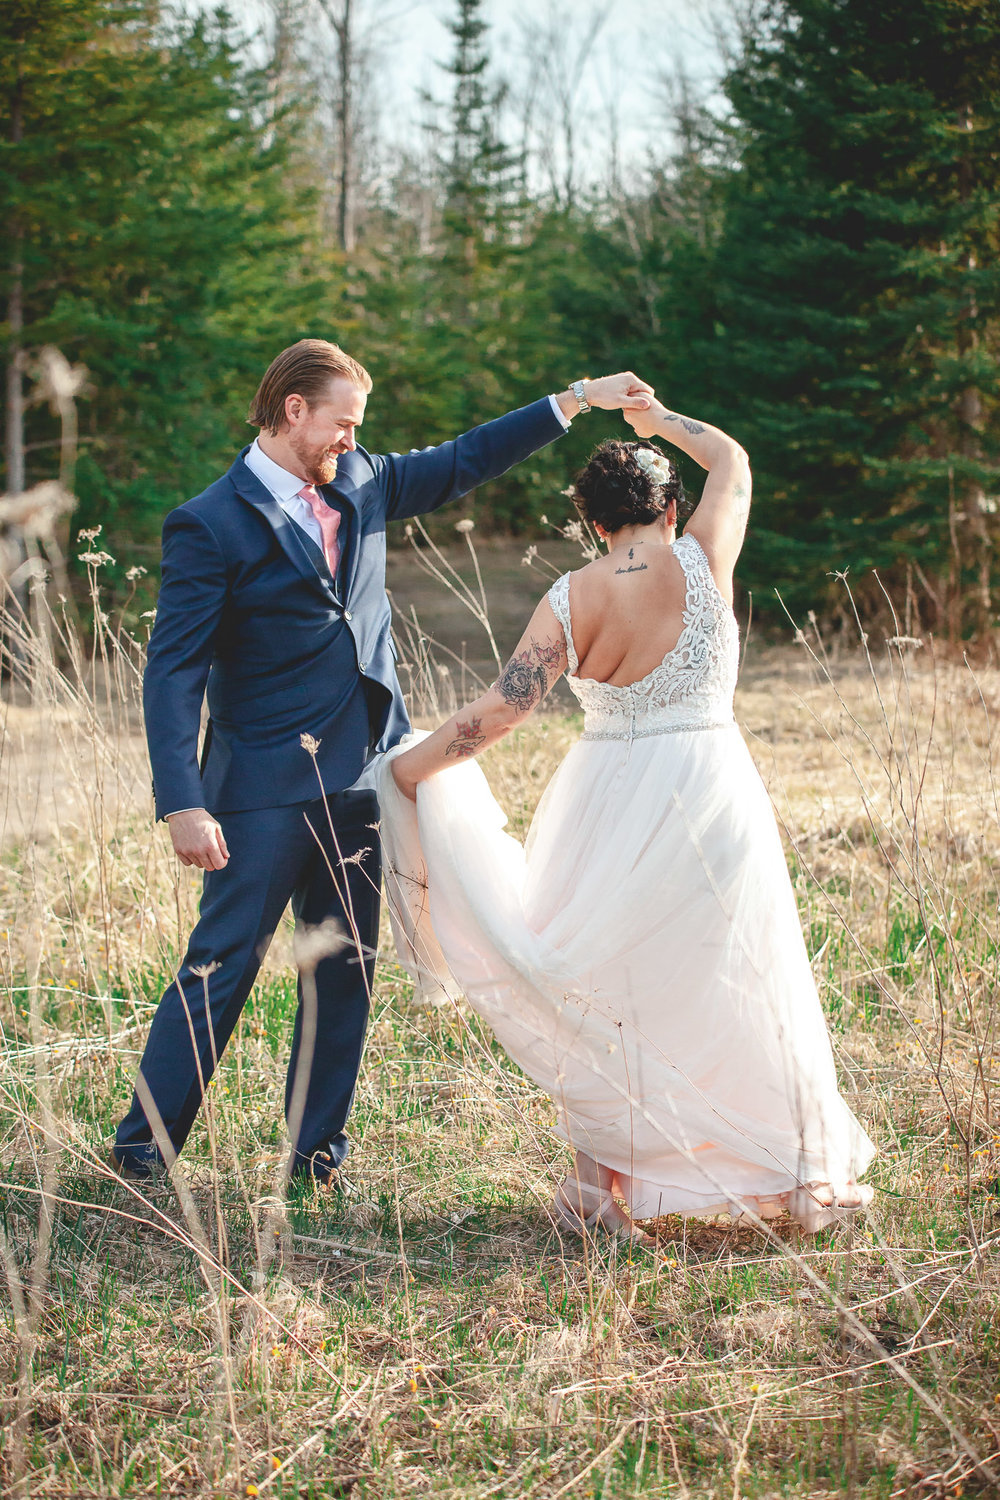 Amy D Photography- Bride and Groom-Barrie Wedding Photography Muskoka Wedding Photography Bride and Groom Poses Bride and Groom Train Tracks Snow Valley Wedding-88.jpg